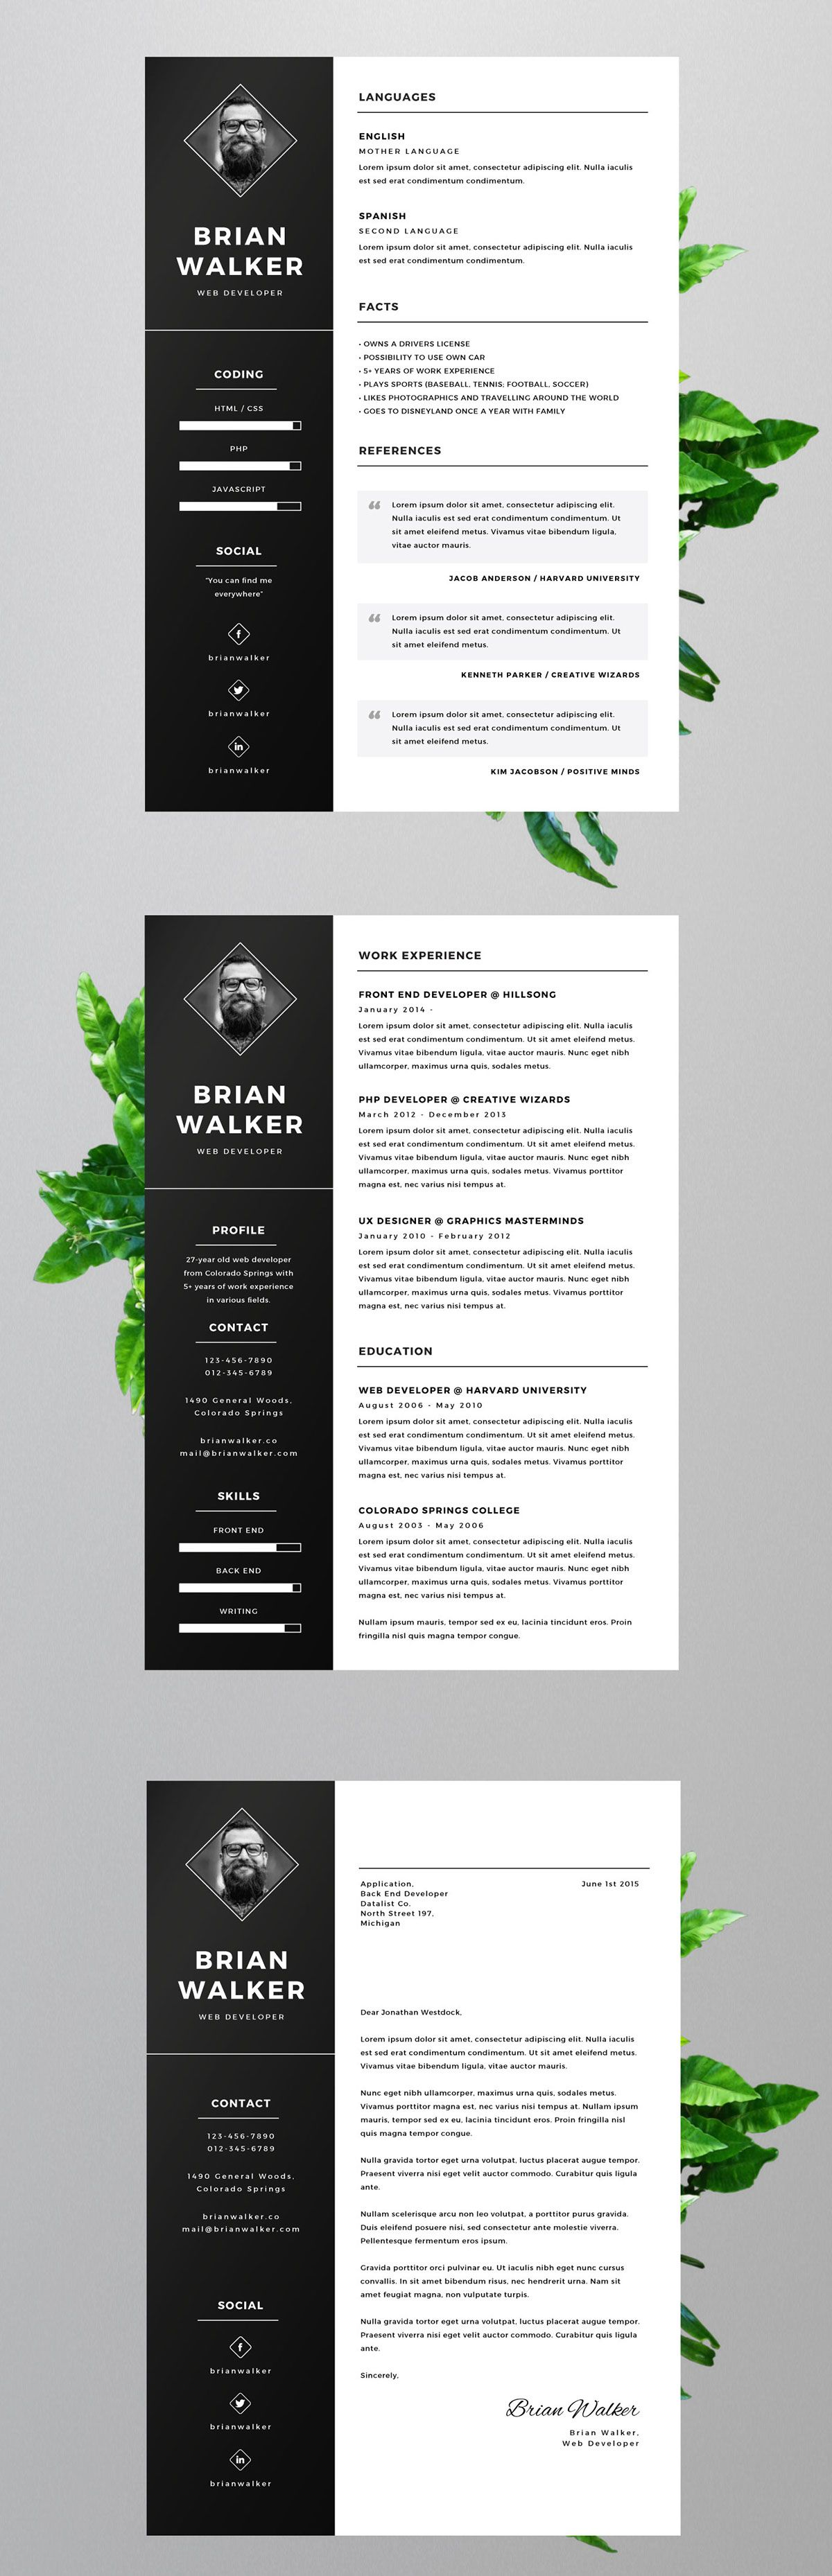 free resume template for microsoft word  adobe photoshop and adobe illustrator  free for